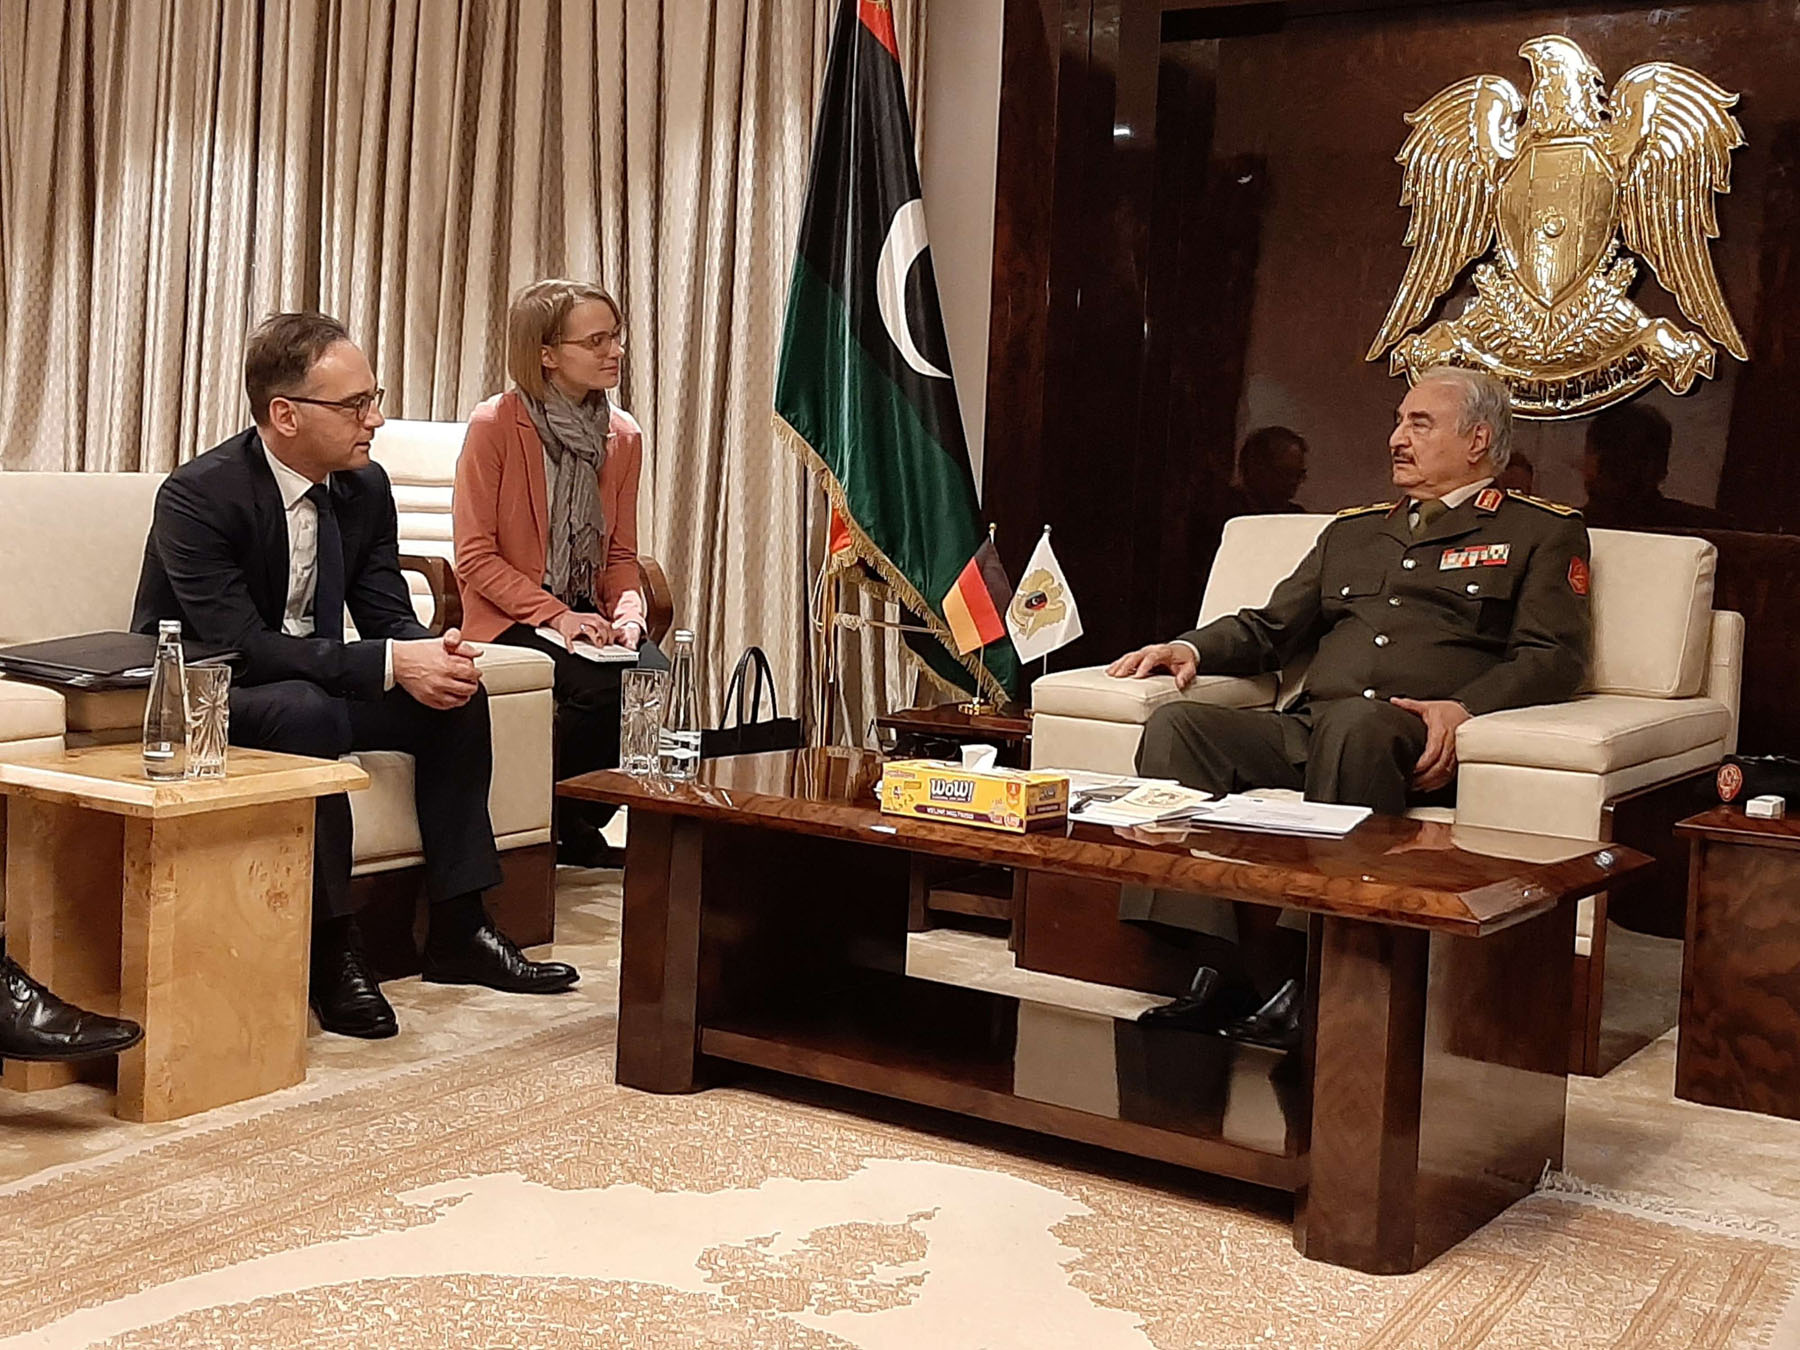 Libyan National Army Field-Marshal Khalifa Haftar (R) meets with German Foreign Minister Heiko Maas (L) at Haftar's headquarters in north-eastern Libya, January 16. (DPA)